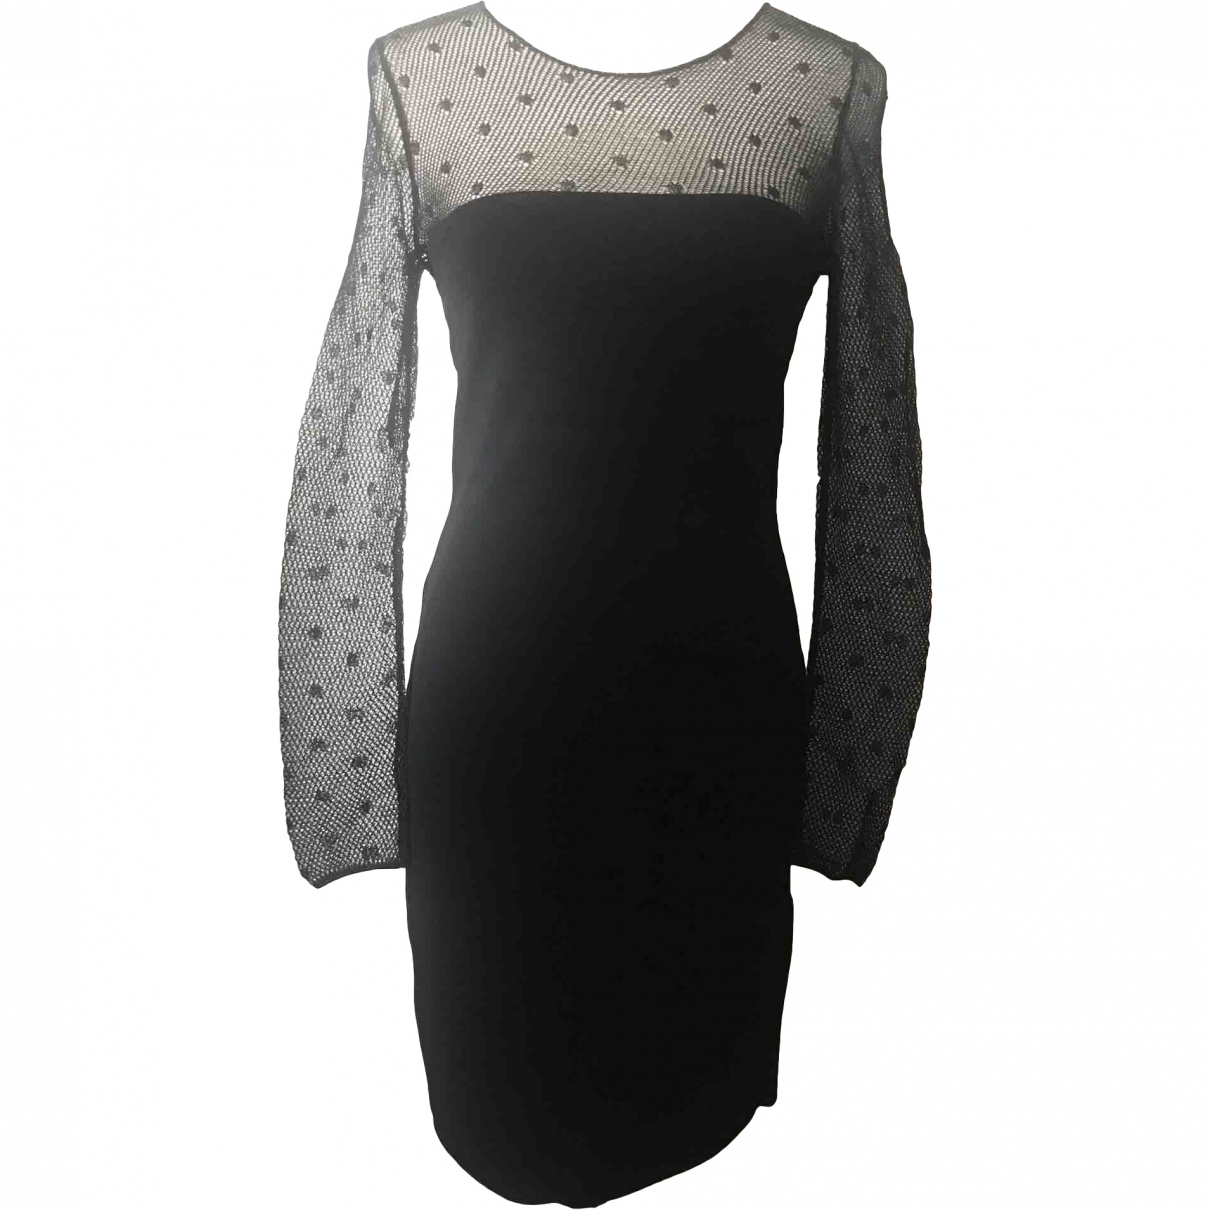 Saint Laurent \N Black dress for Women M International